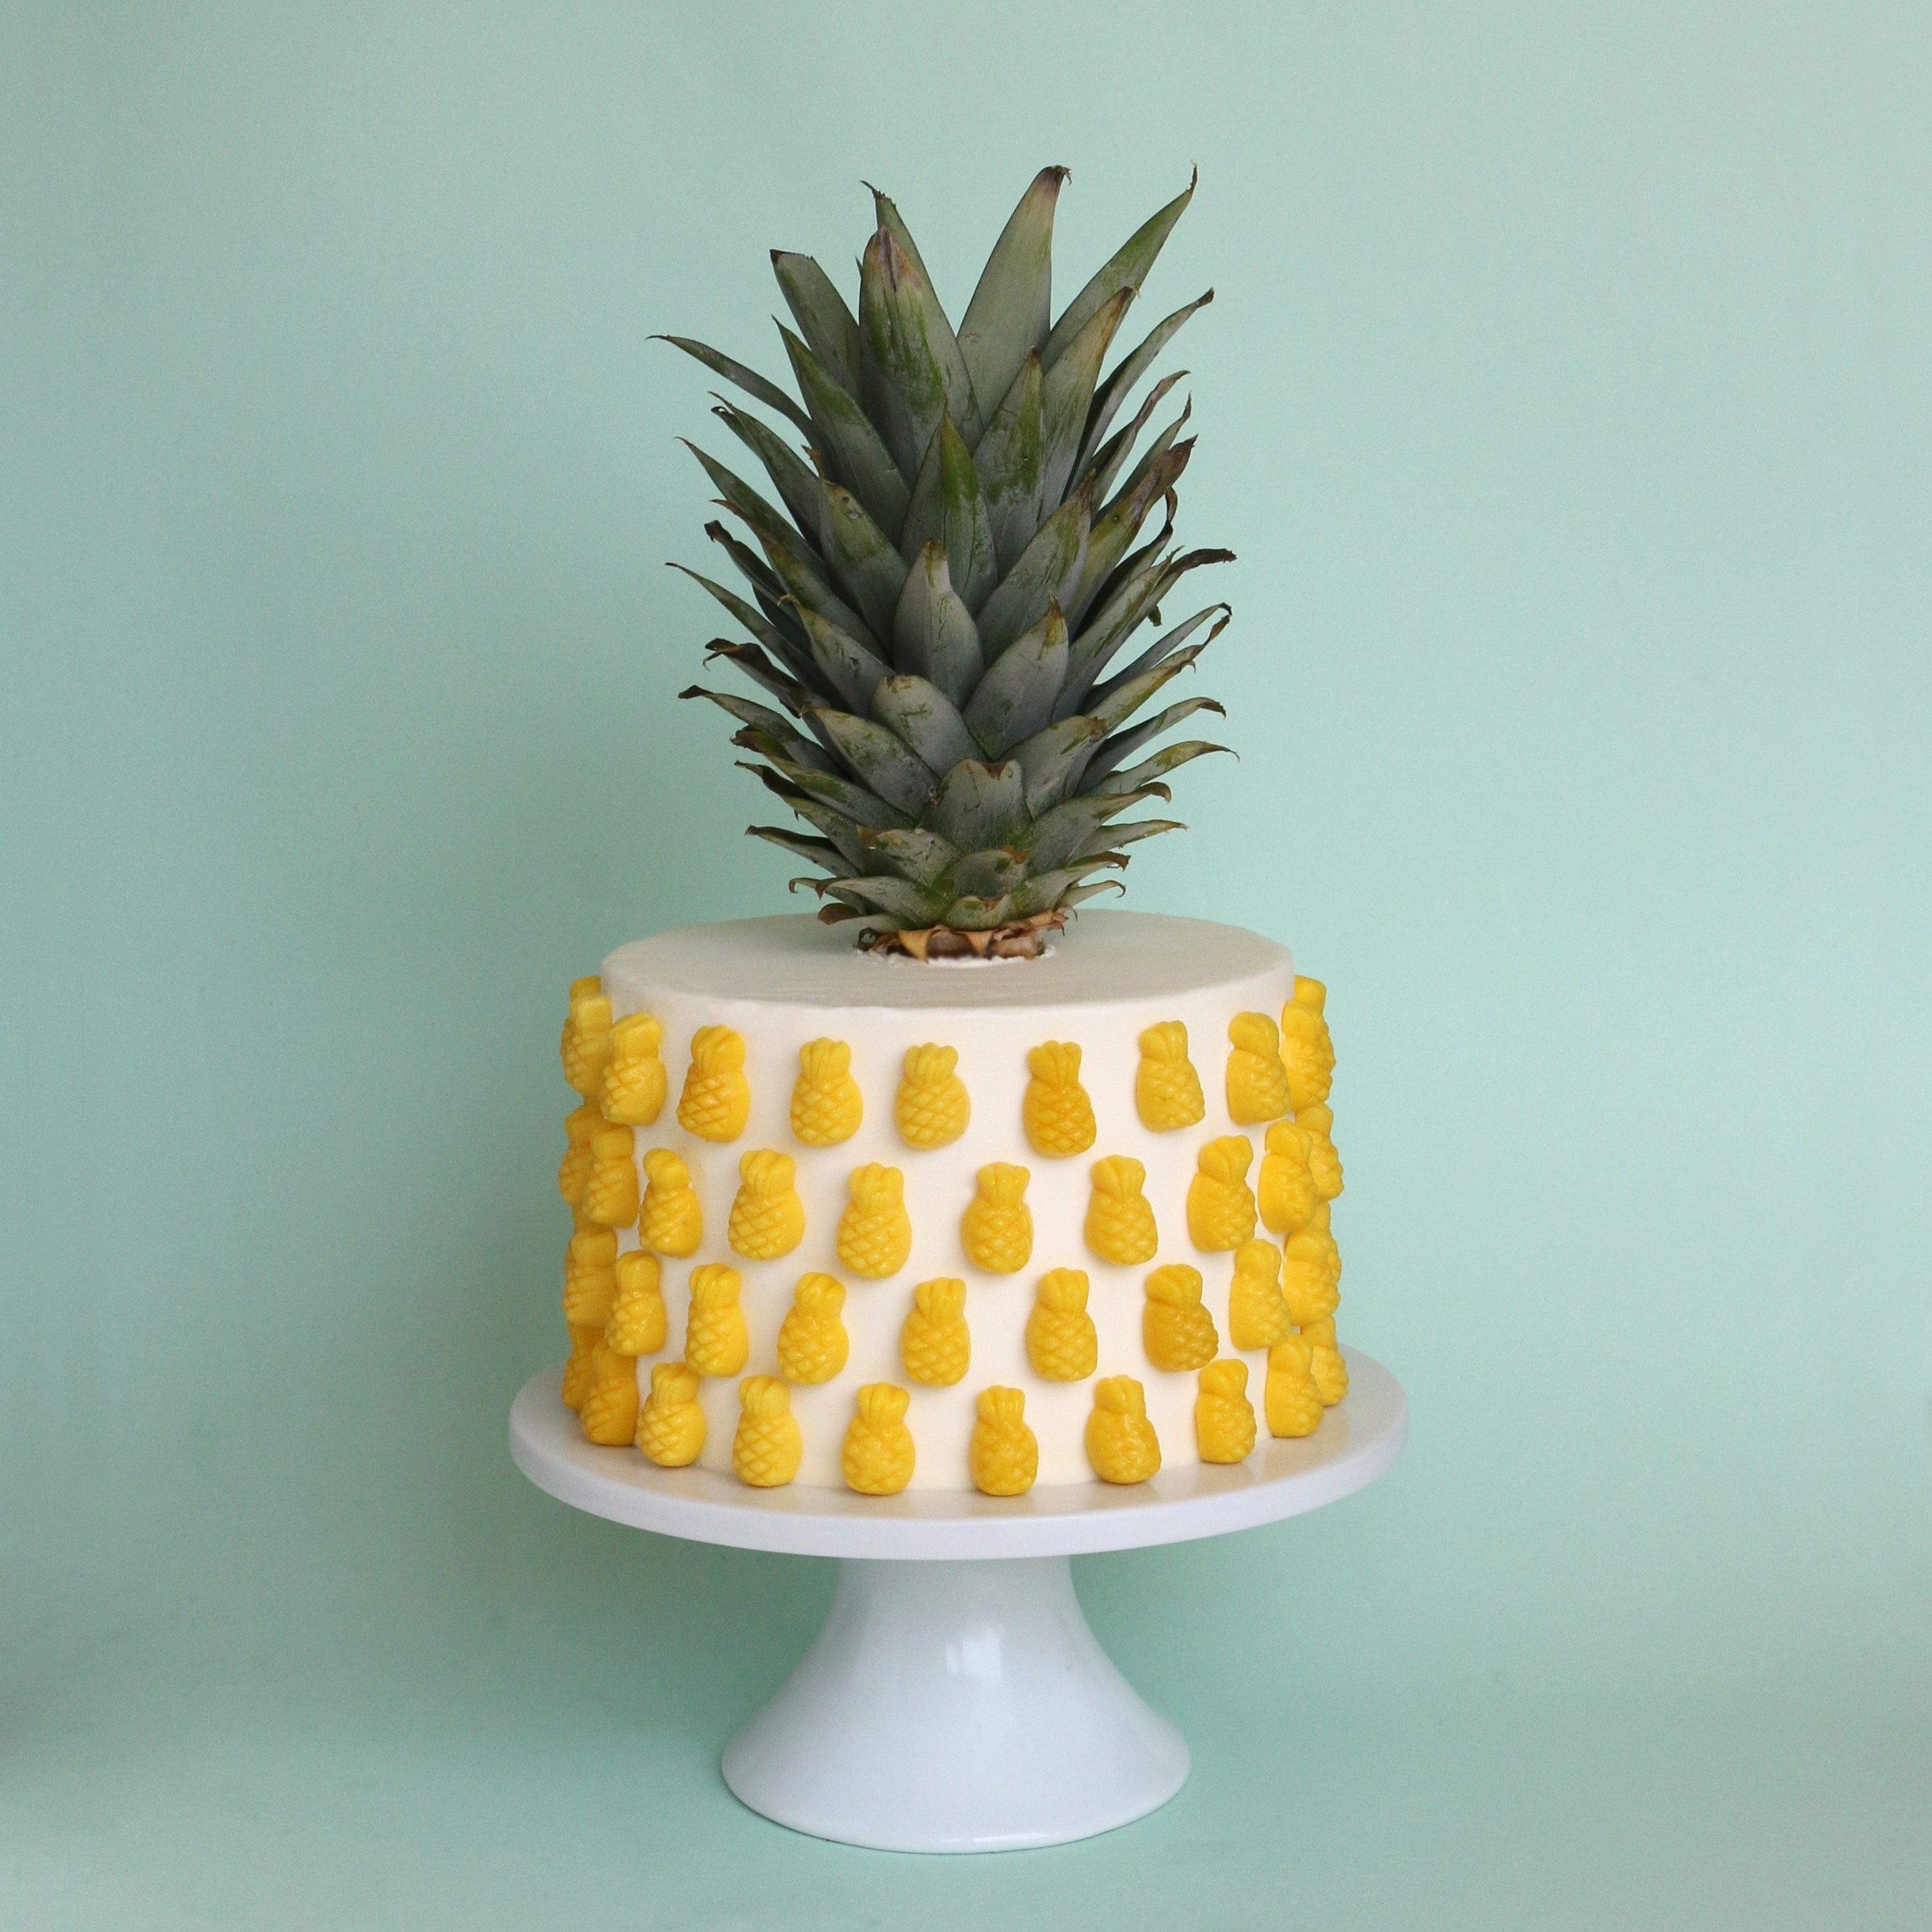 pineapple layer cake decorated with sugarfina candy this